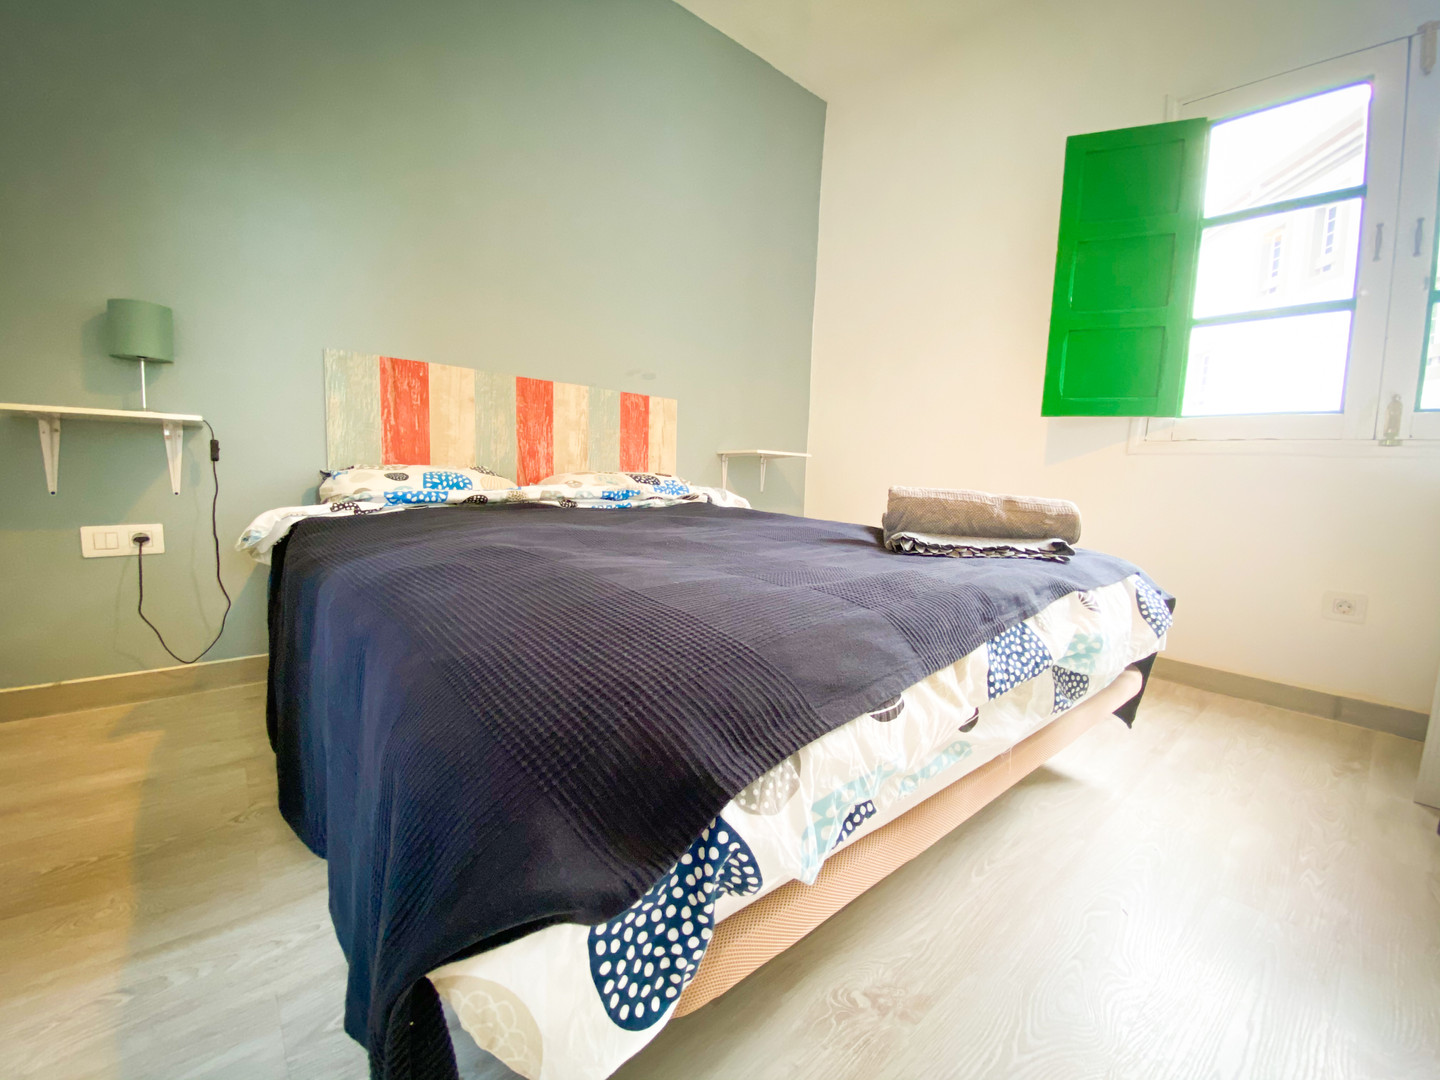 Double bed with window and green shutter in guest room 4 at Casa Blanca Guest House Tenerife